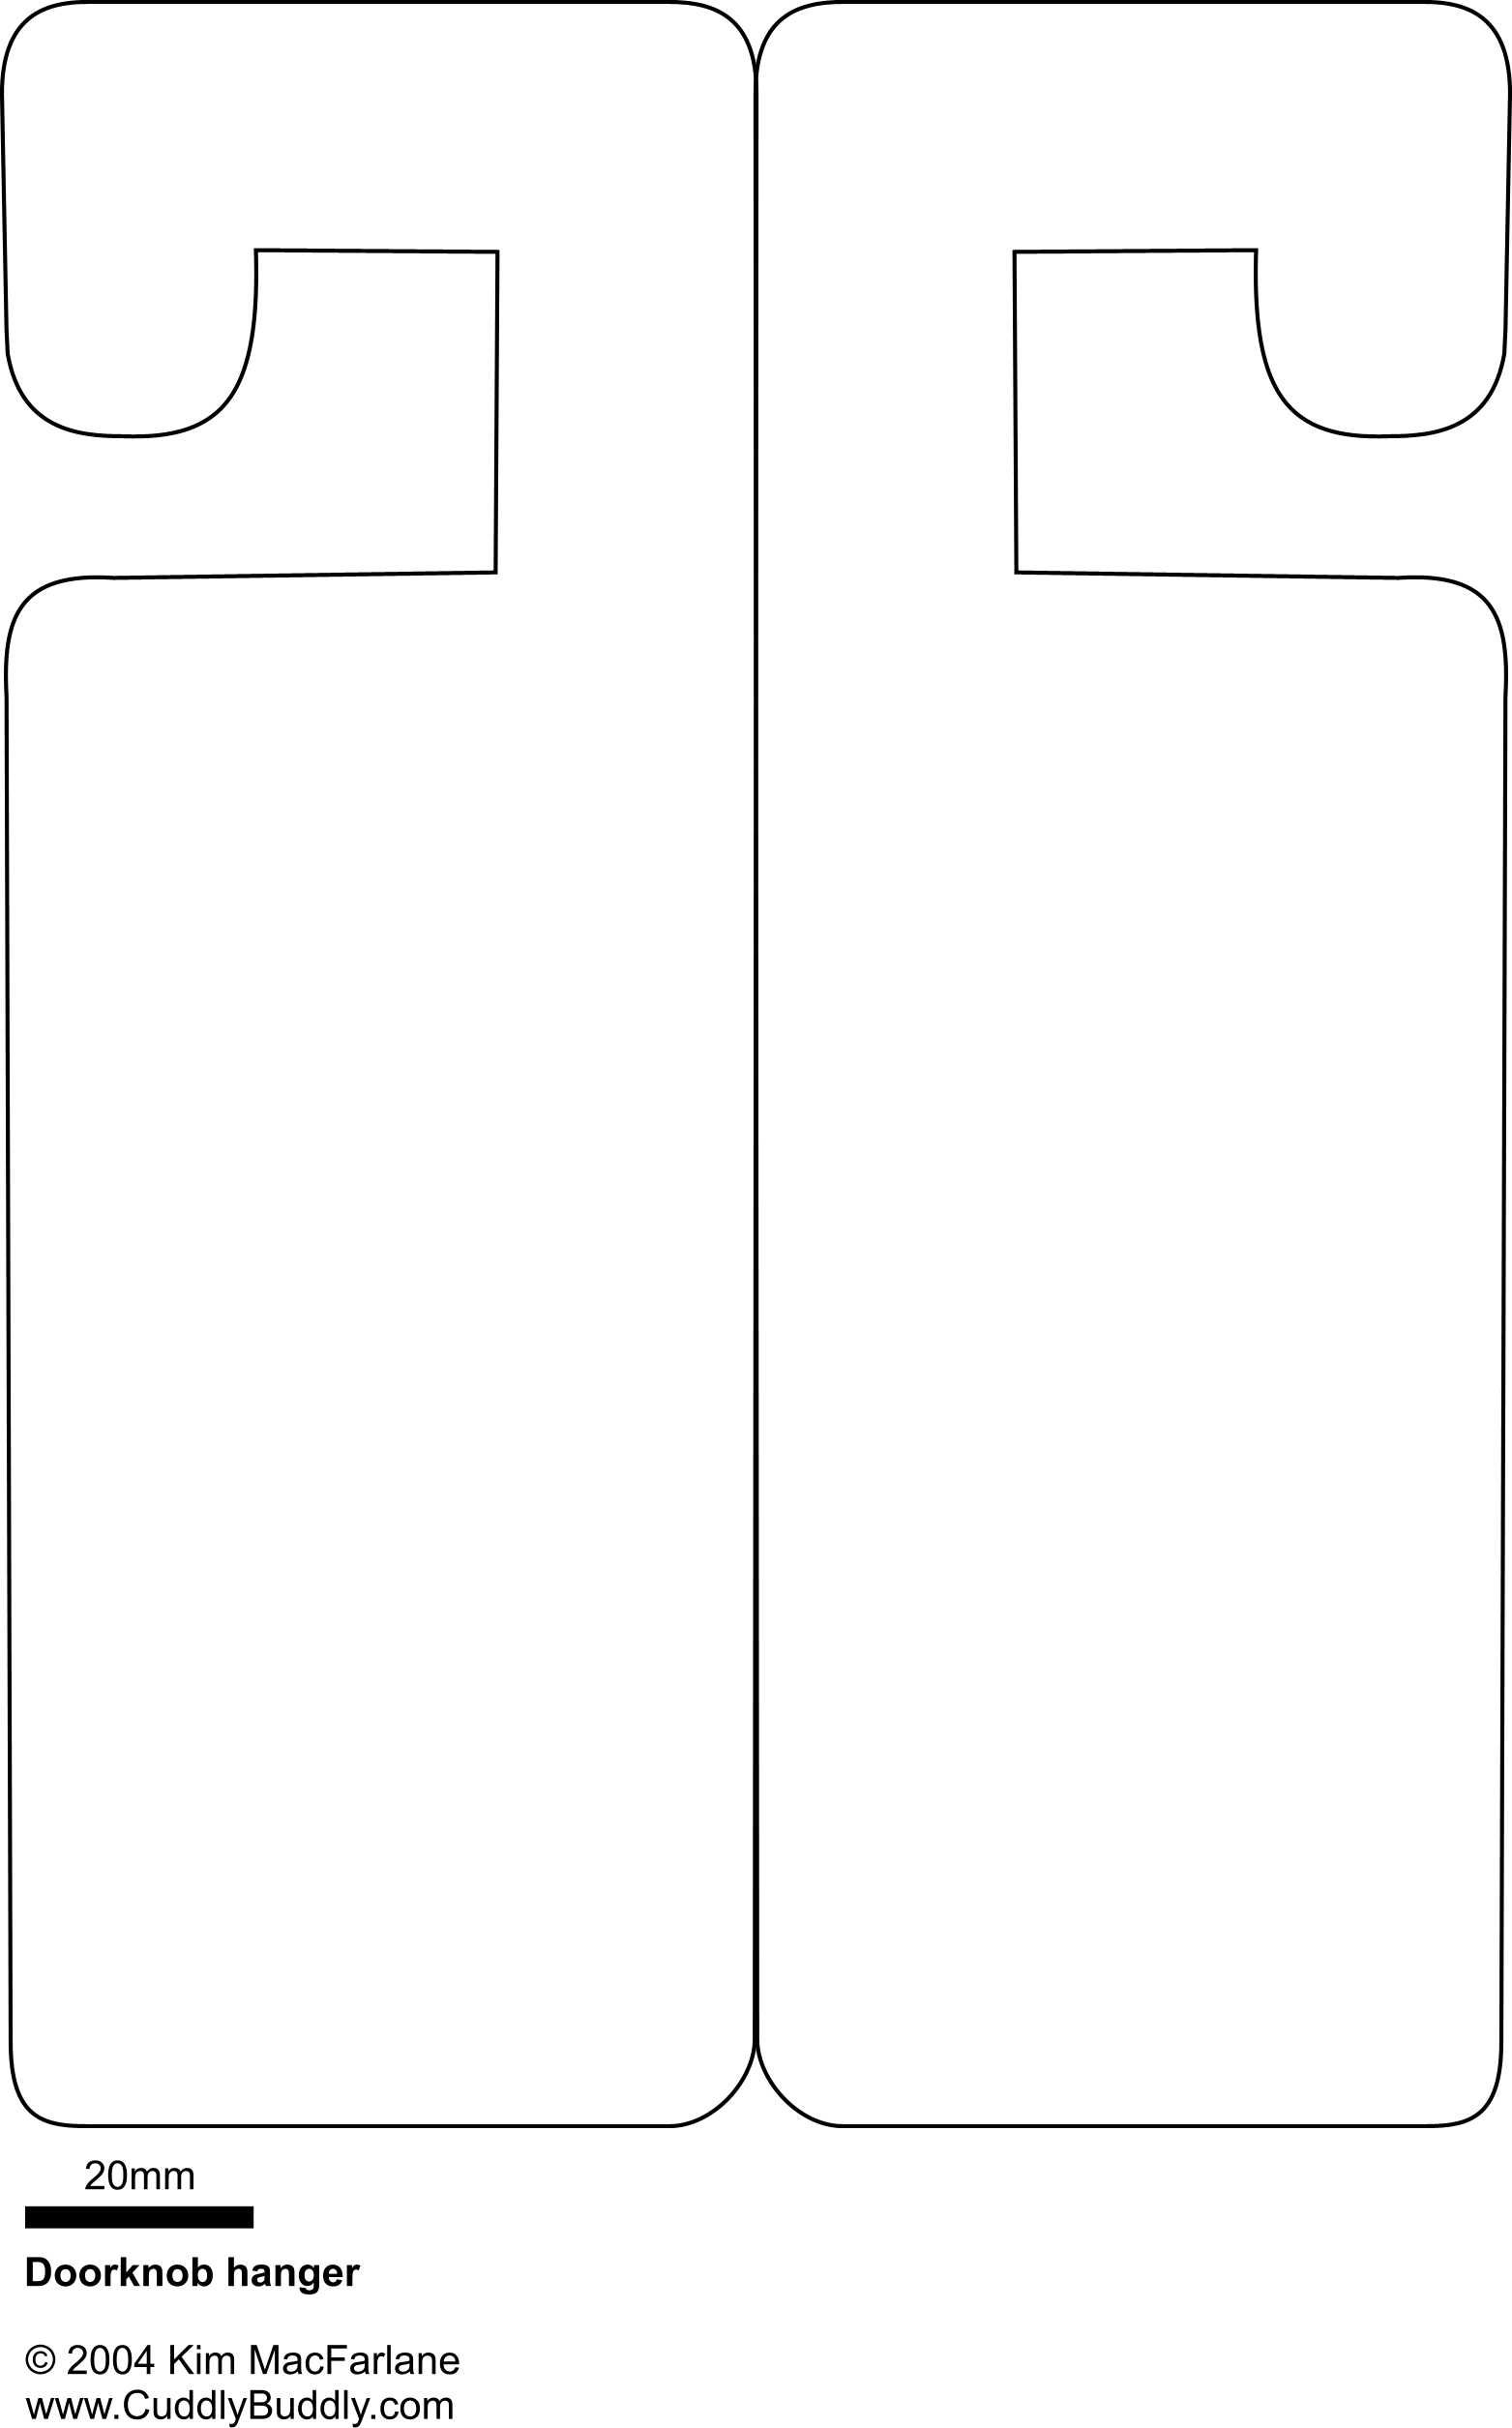 Doorknob hanger template - Something to occupy the kids on boring ...